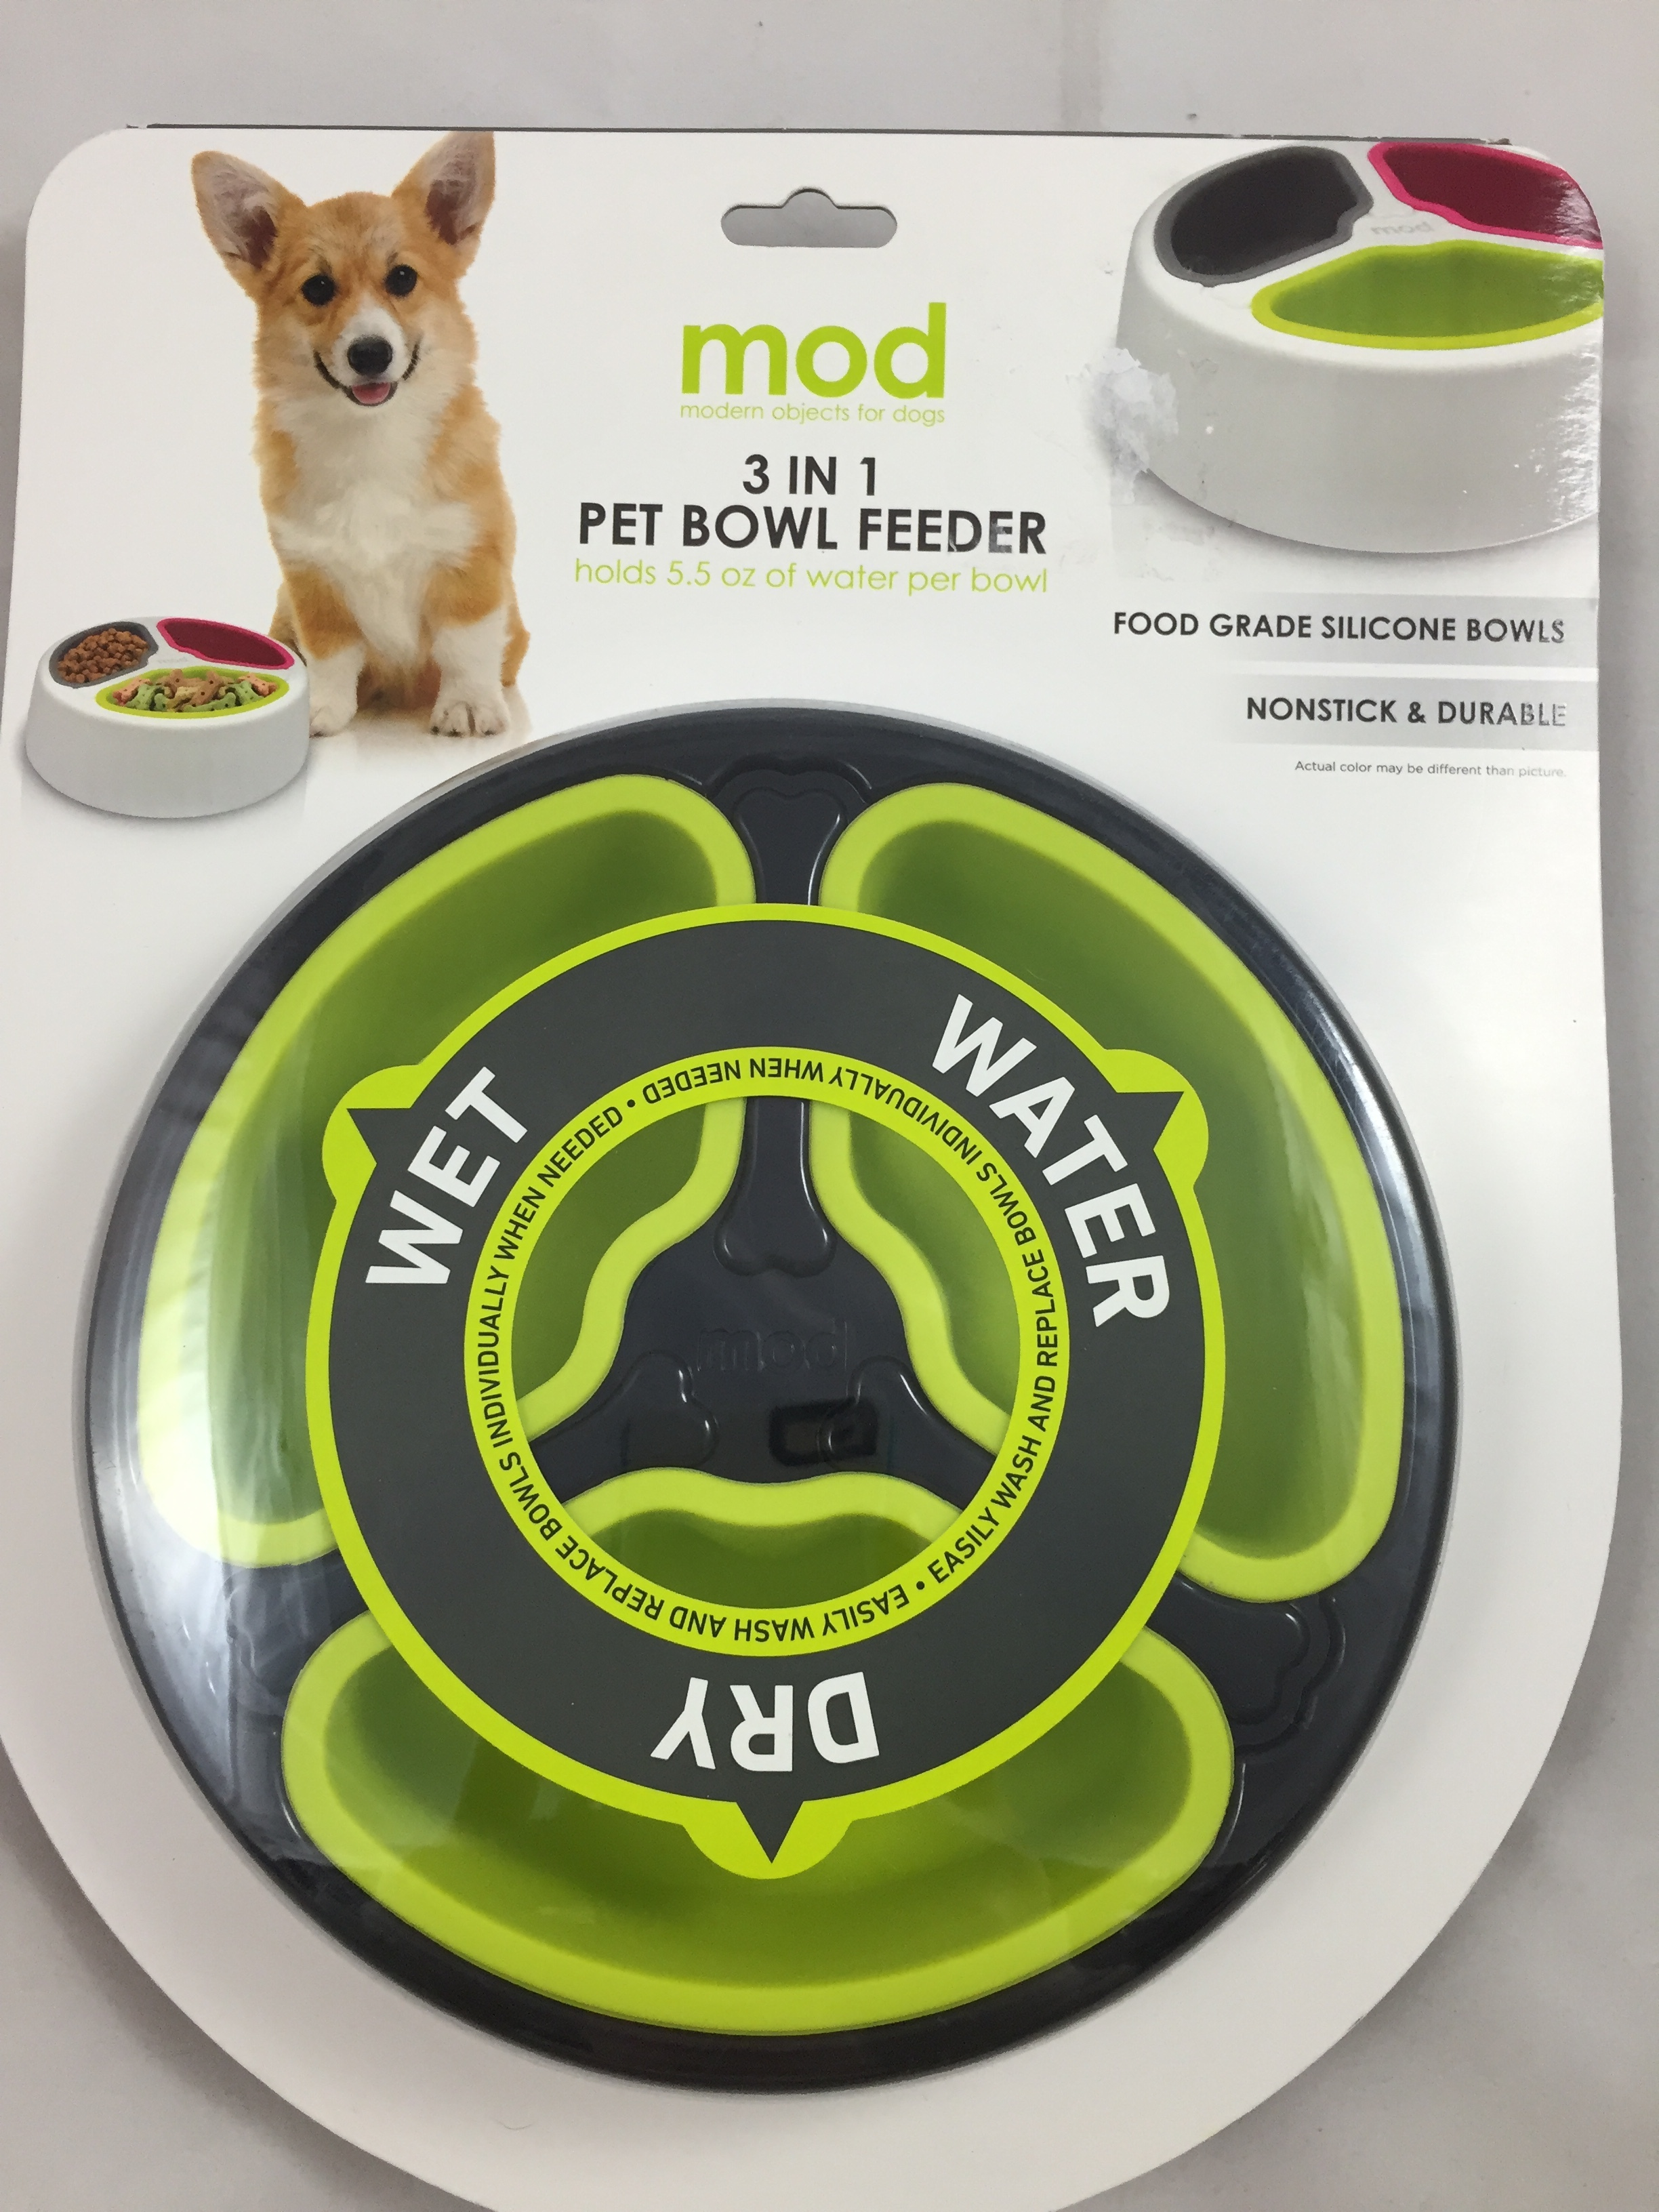 Modern Objects For Dogs